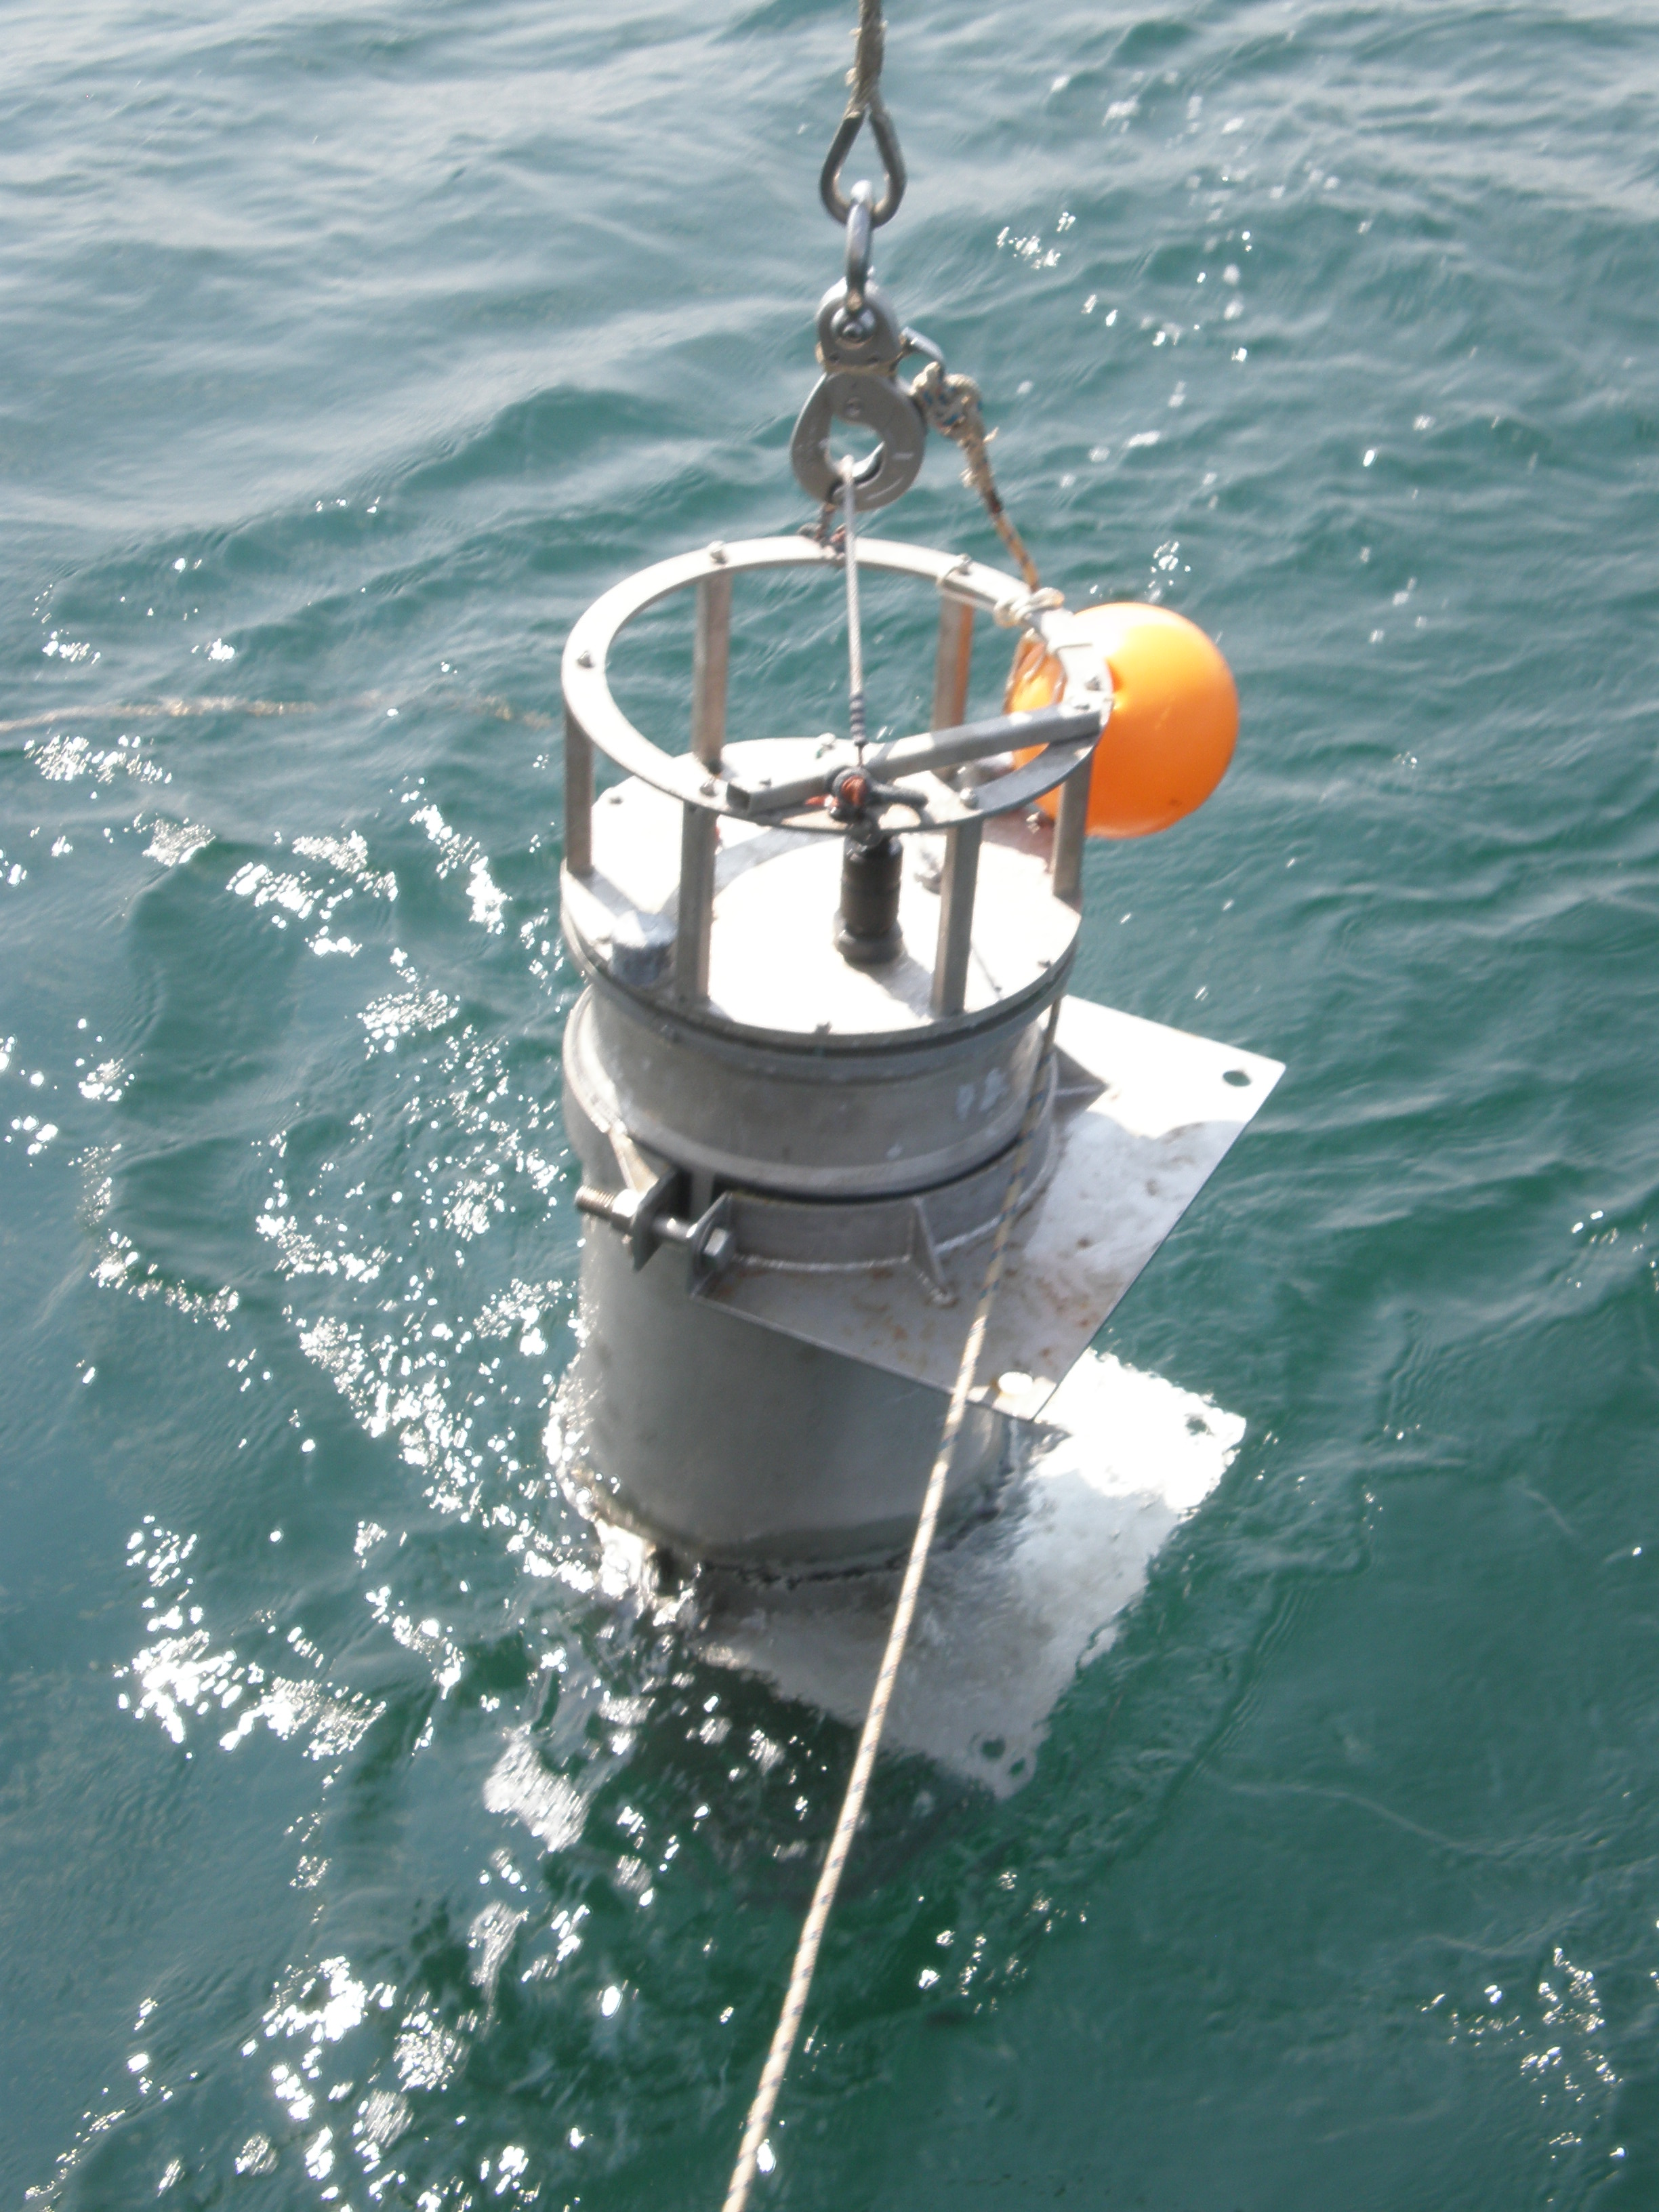 The Imaging FlowCytobot is an automated underwater microscope that produces high-resolution micrographs of particles suspended in the water. Credit: McLane Research Laboratories